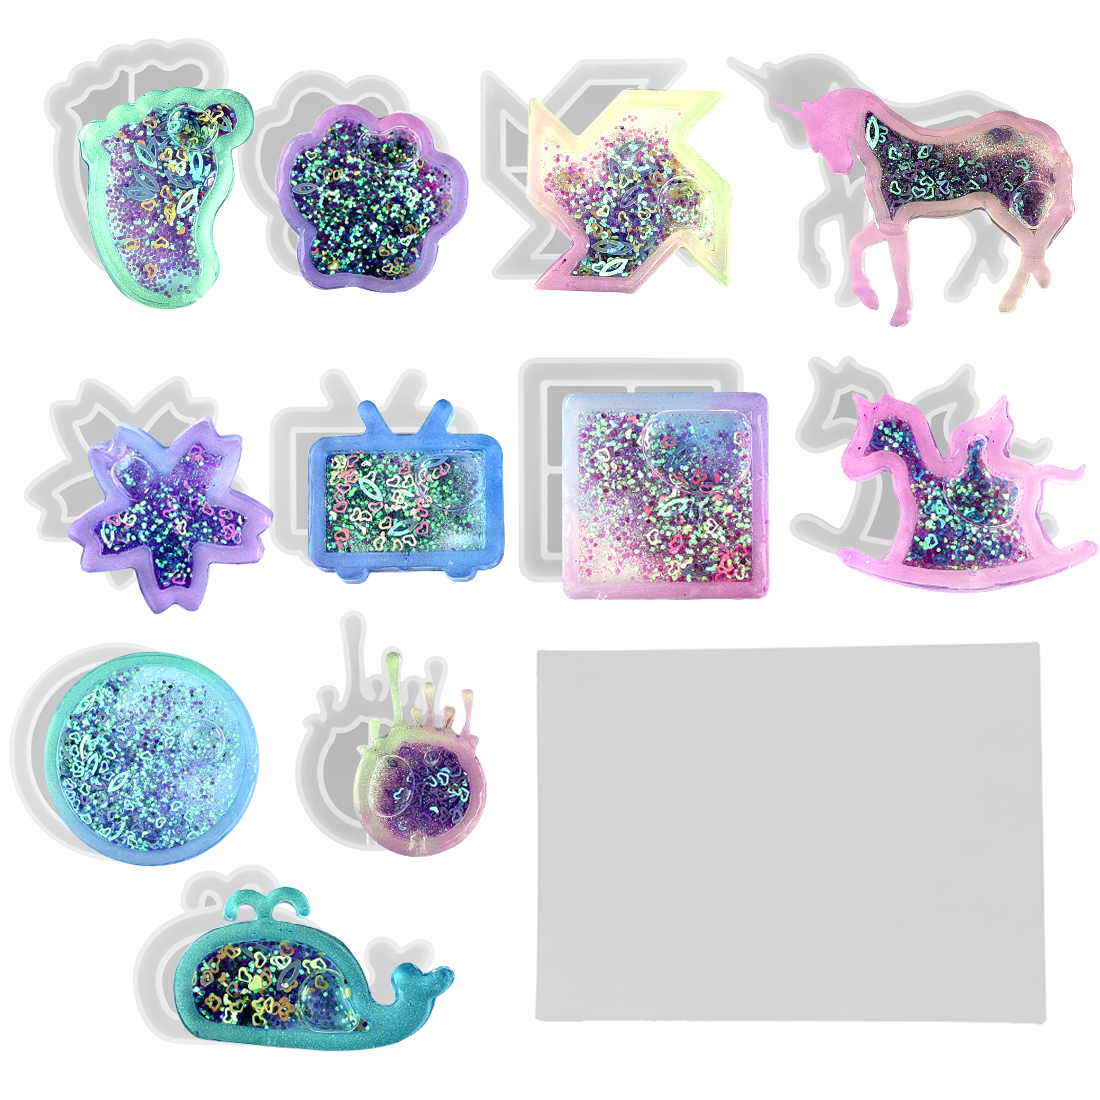 DIY Resin Shaker Epoxy Key Chain Charms Quicksand Bear Paw Silicone Mold Jewelry Making Pendant Craft Tools